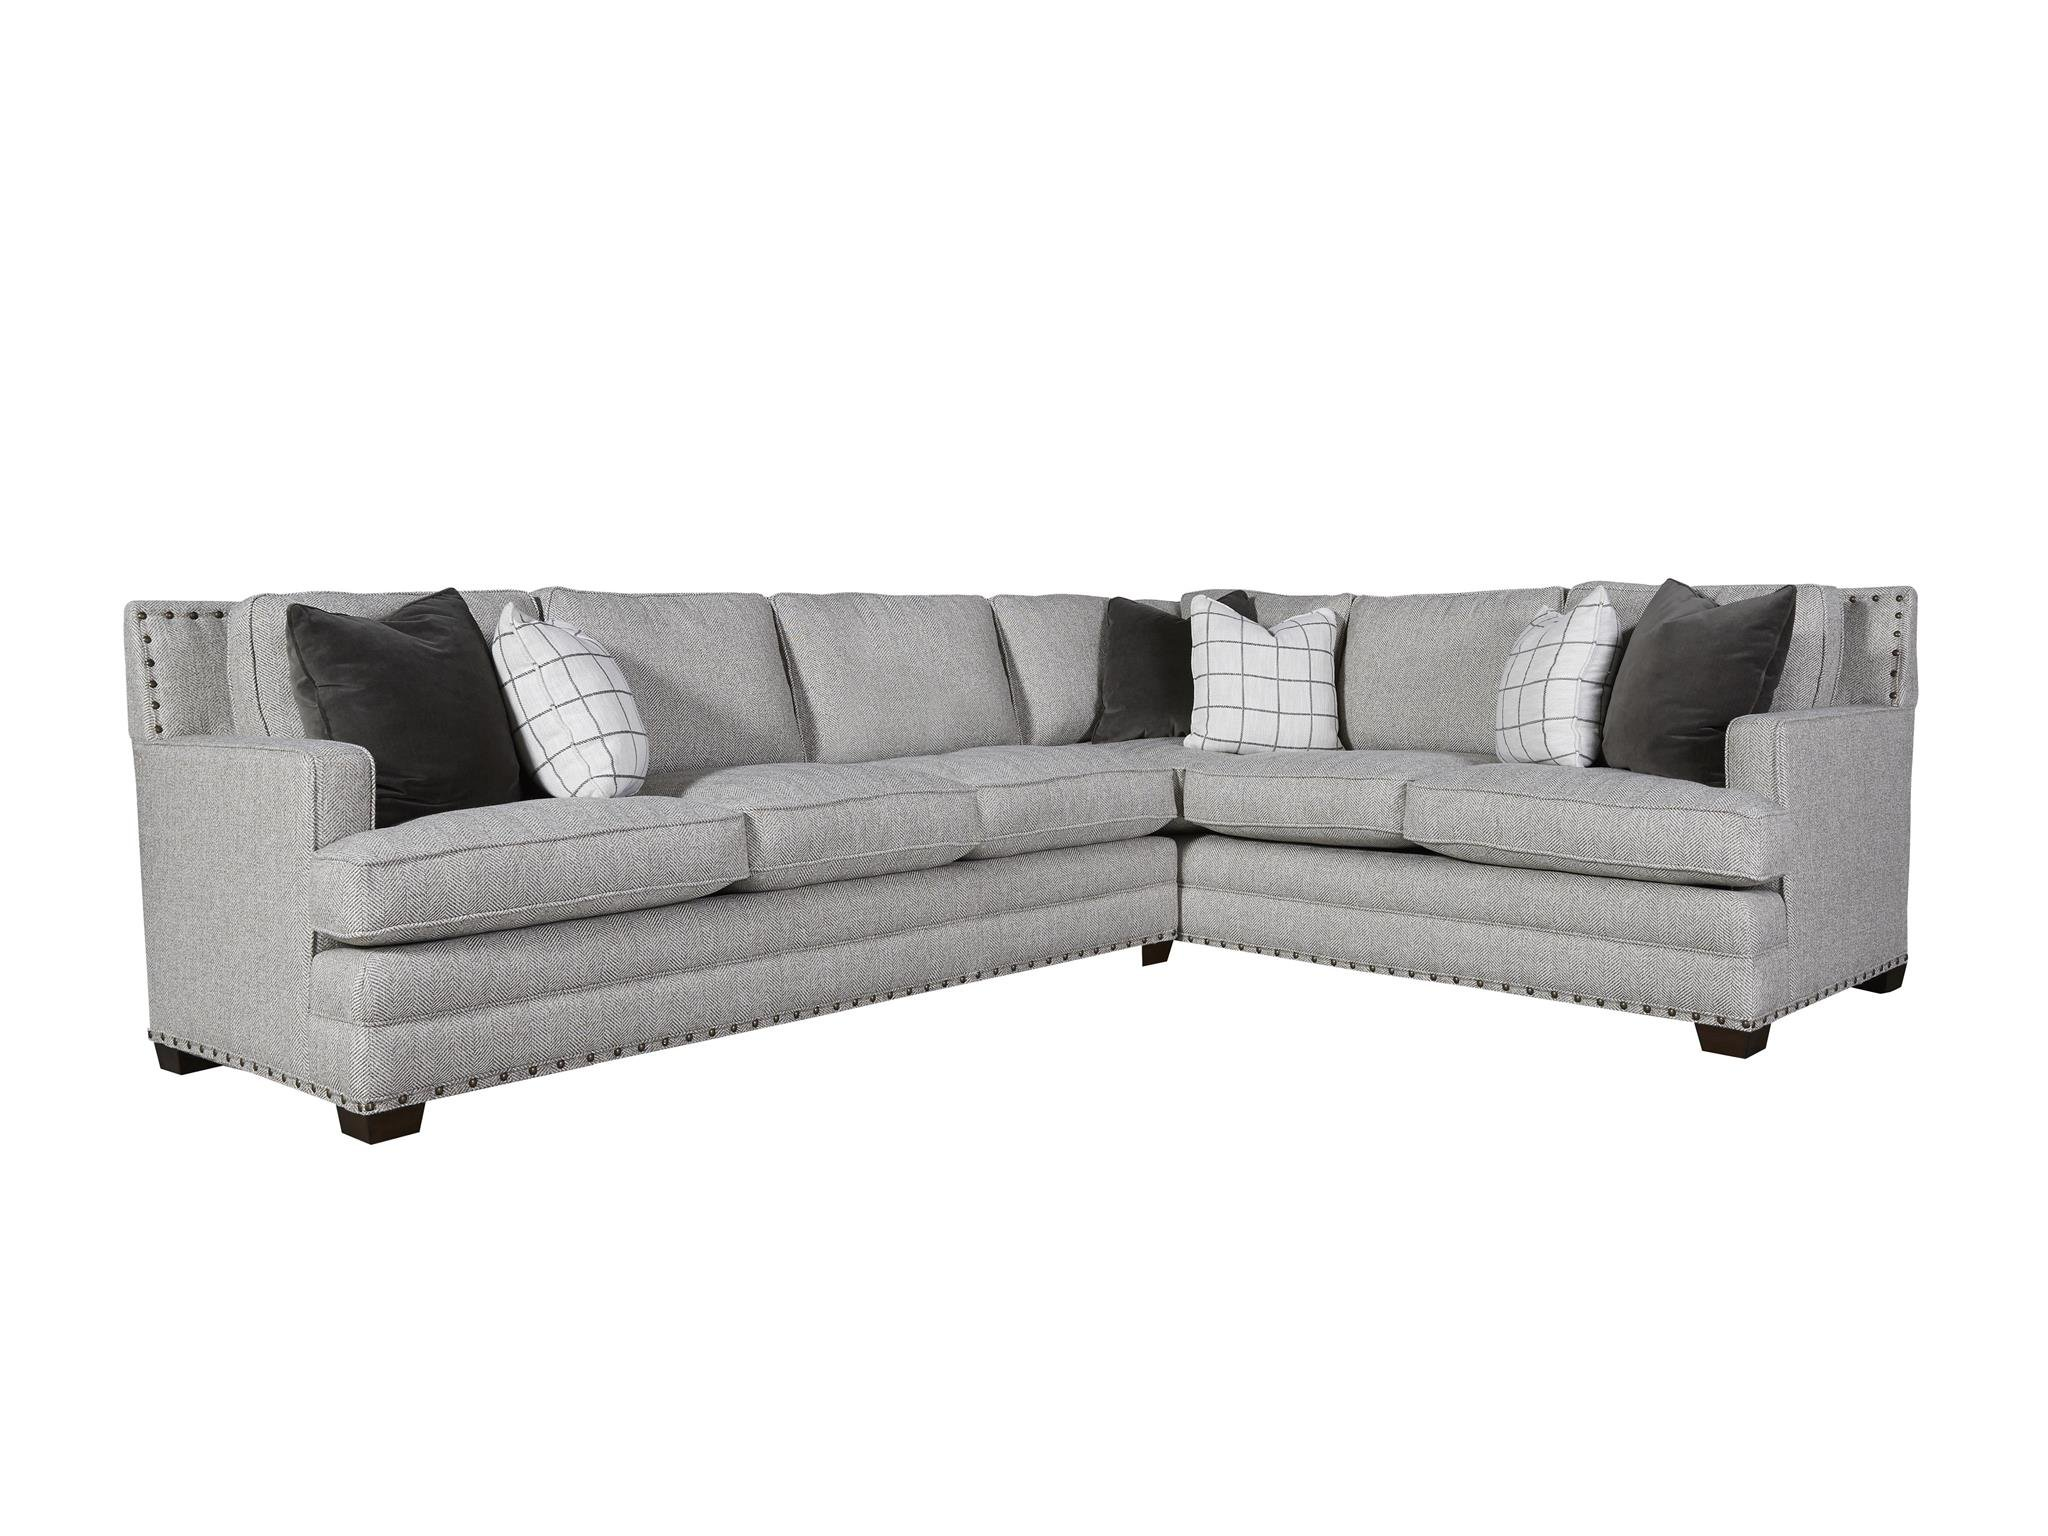 Marvelous Riley Sectional Left Arm Sofa Right Arm Corner. Loading Zoom